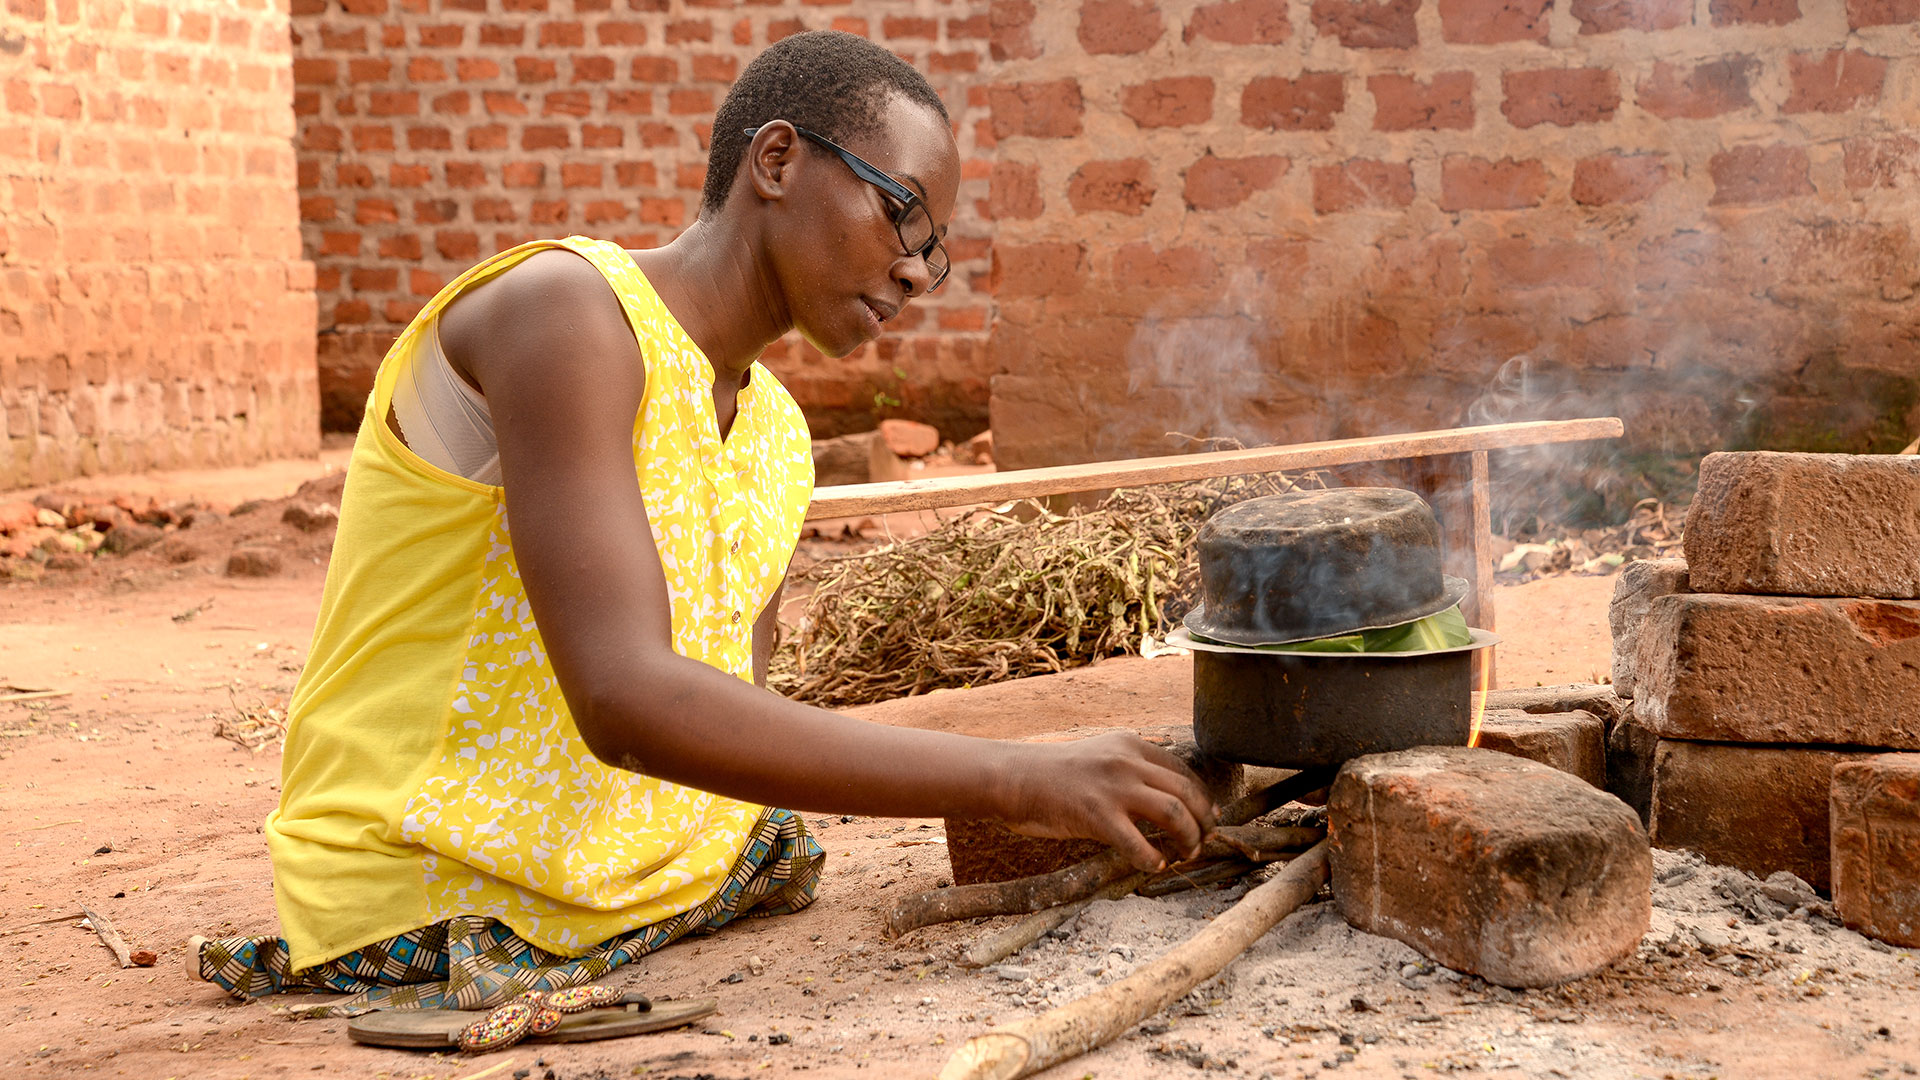 Grace prepares a meal on her outdoor stove.